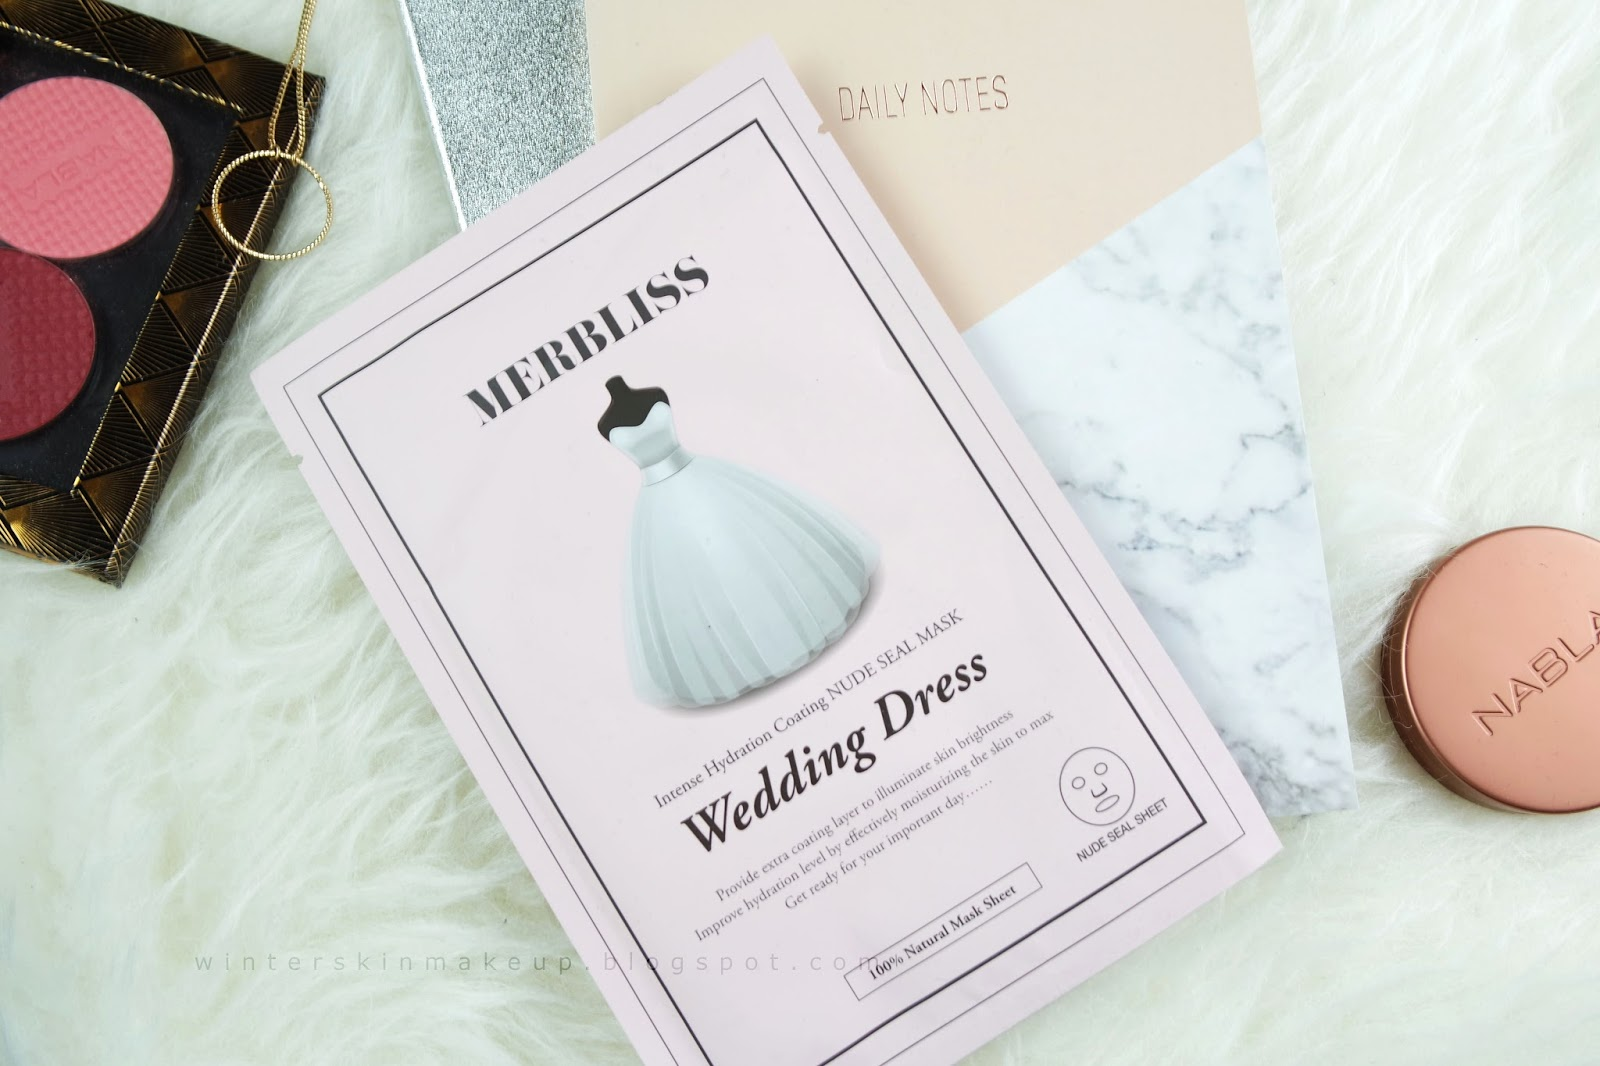 멀블리스 Wedding Dress Intense Hydration Coating Nude Seal mask